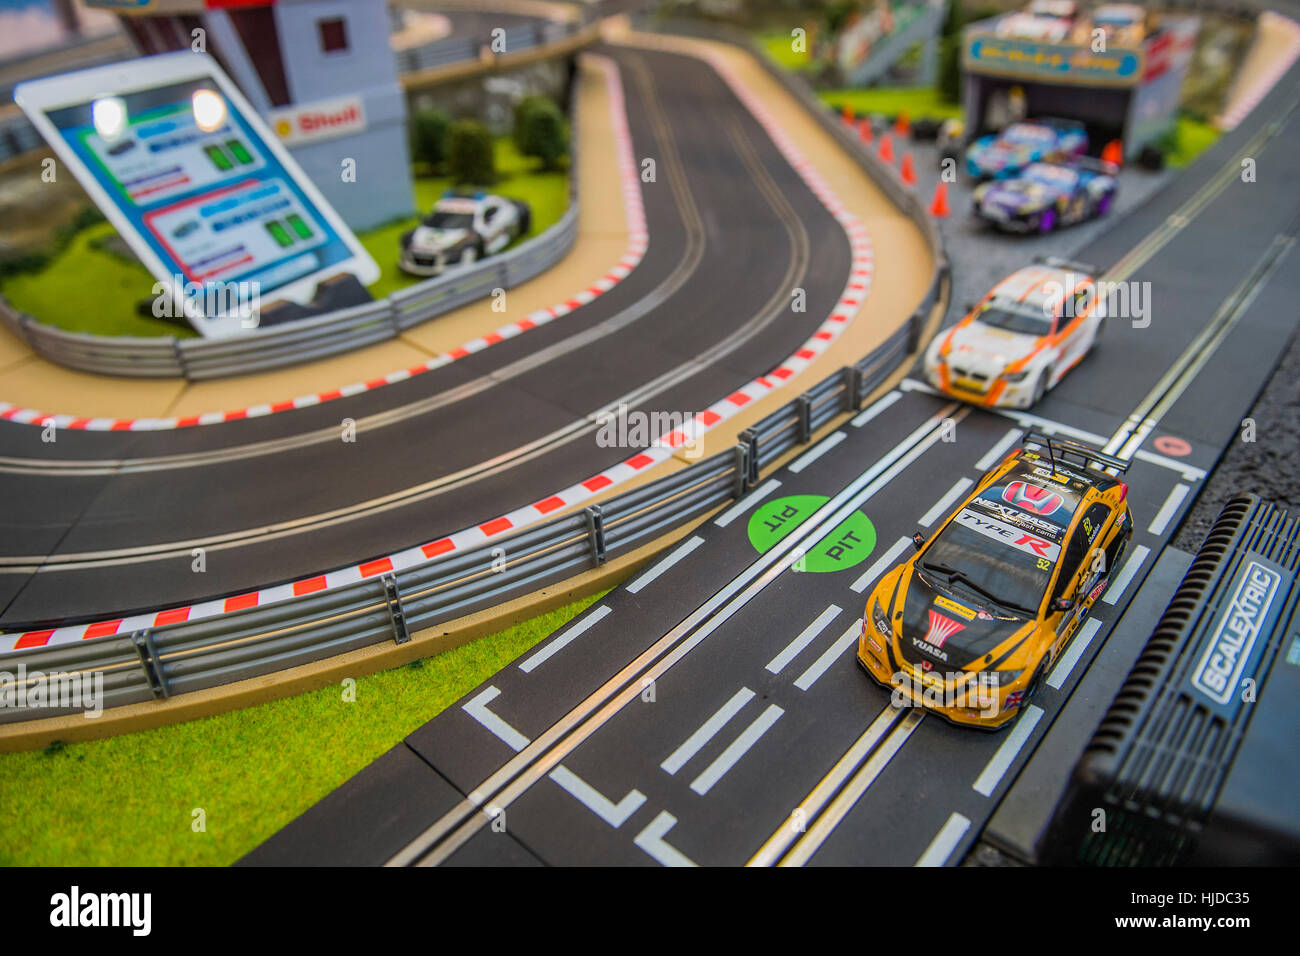 London, UK. 24th Jan, 2017. Tablet app controller and Scalextrics set on the Hornby stand - The London Toy Fair - Stock Image